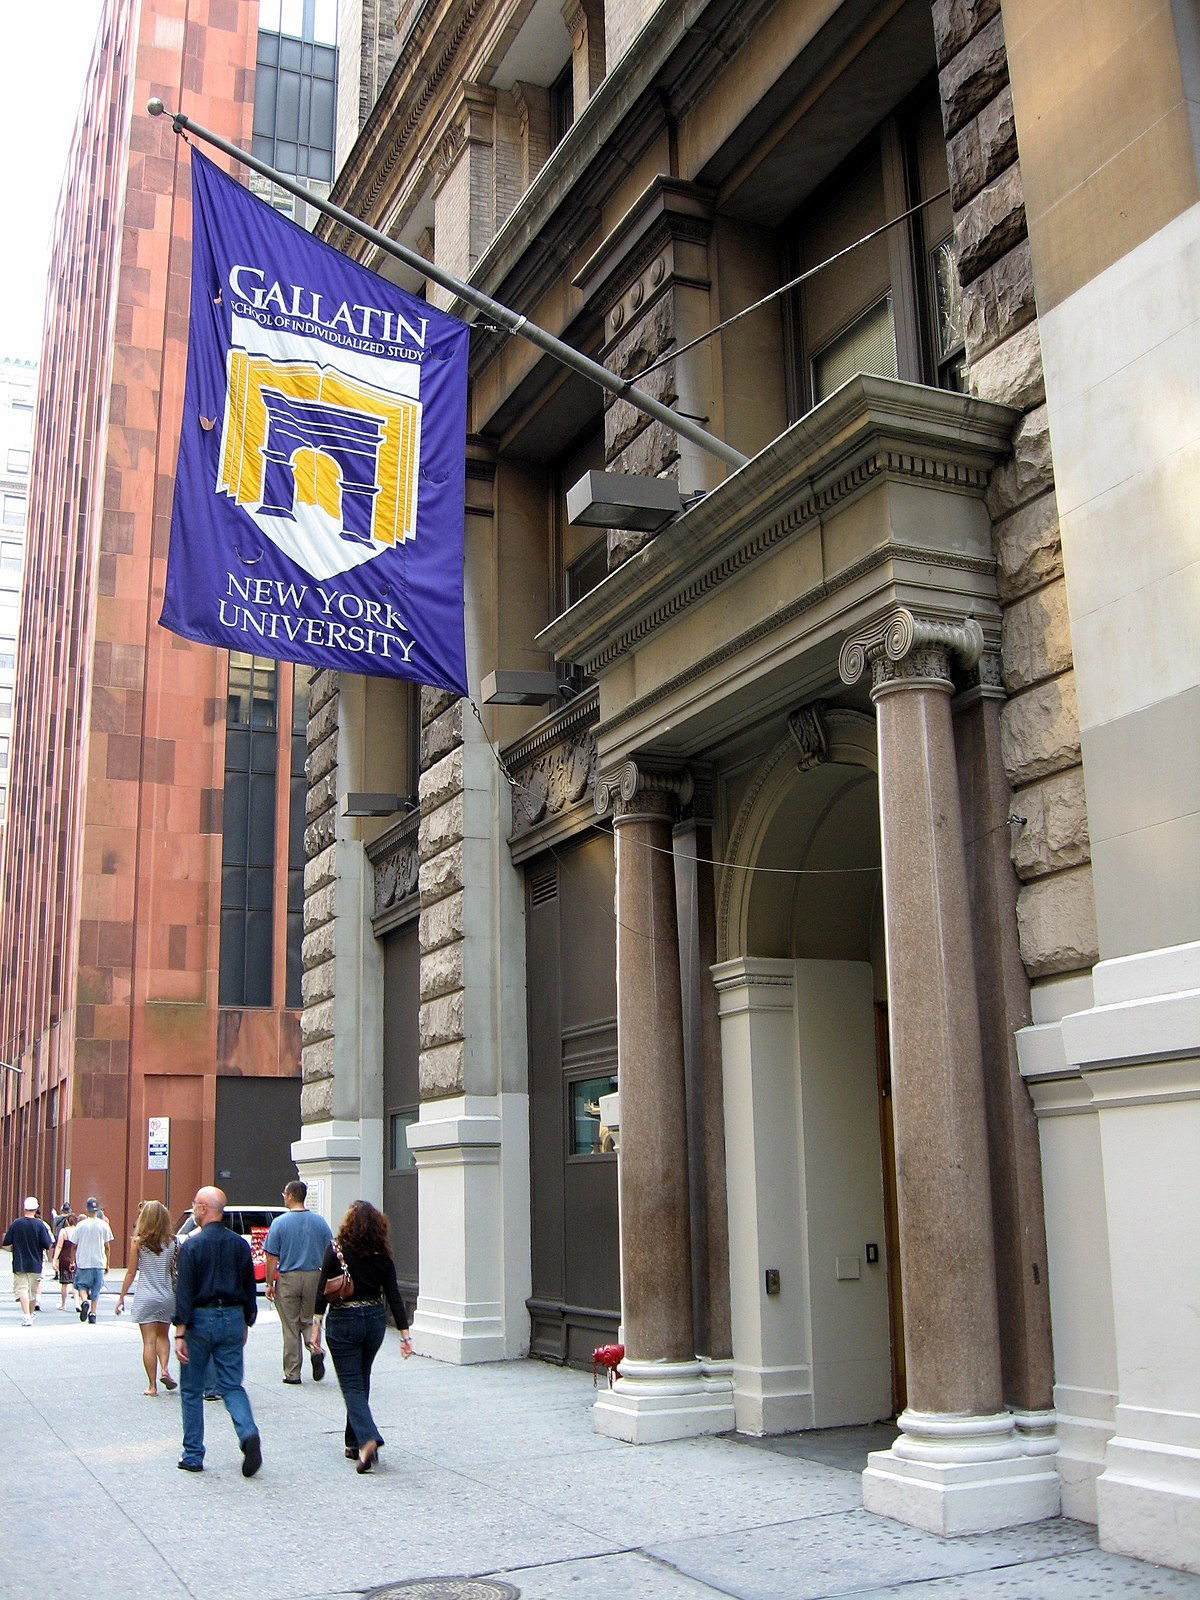 Nyu Tisch School Of The Arts Location Universidad De Nueva York Wikipedia La Enciclopedia Libre